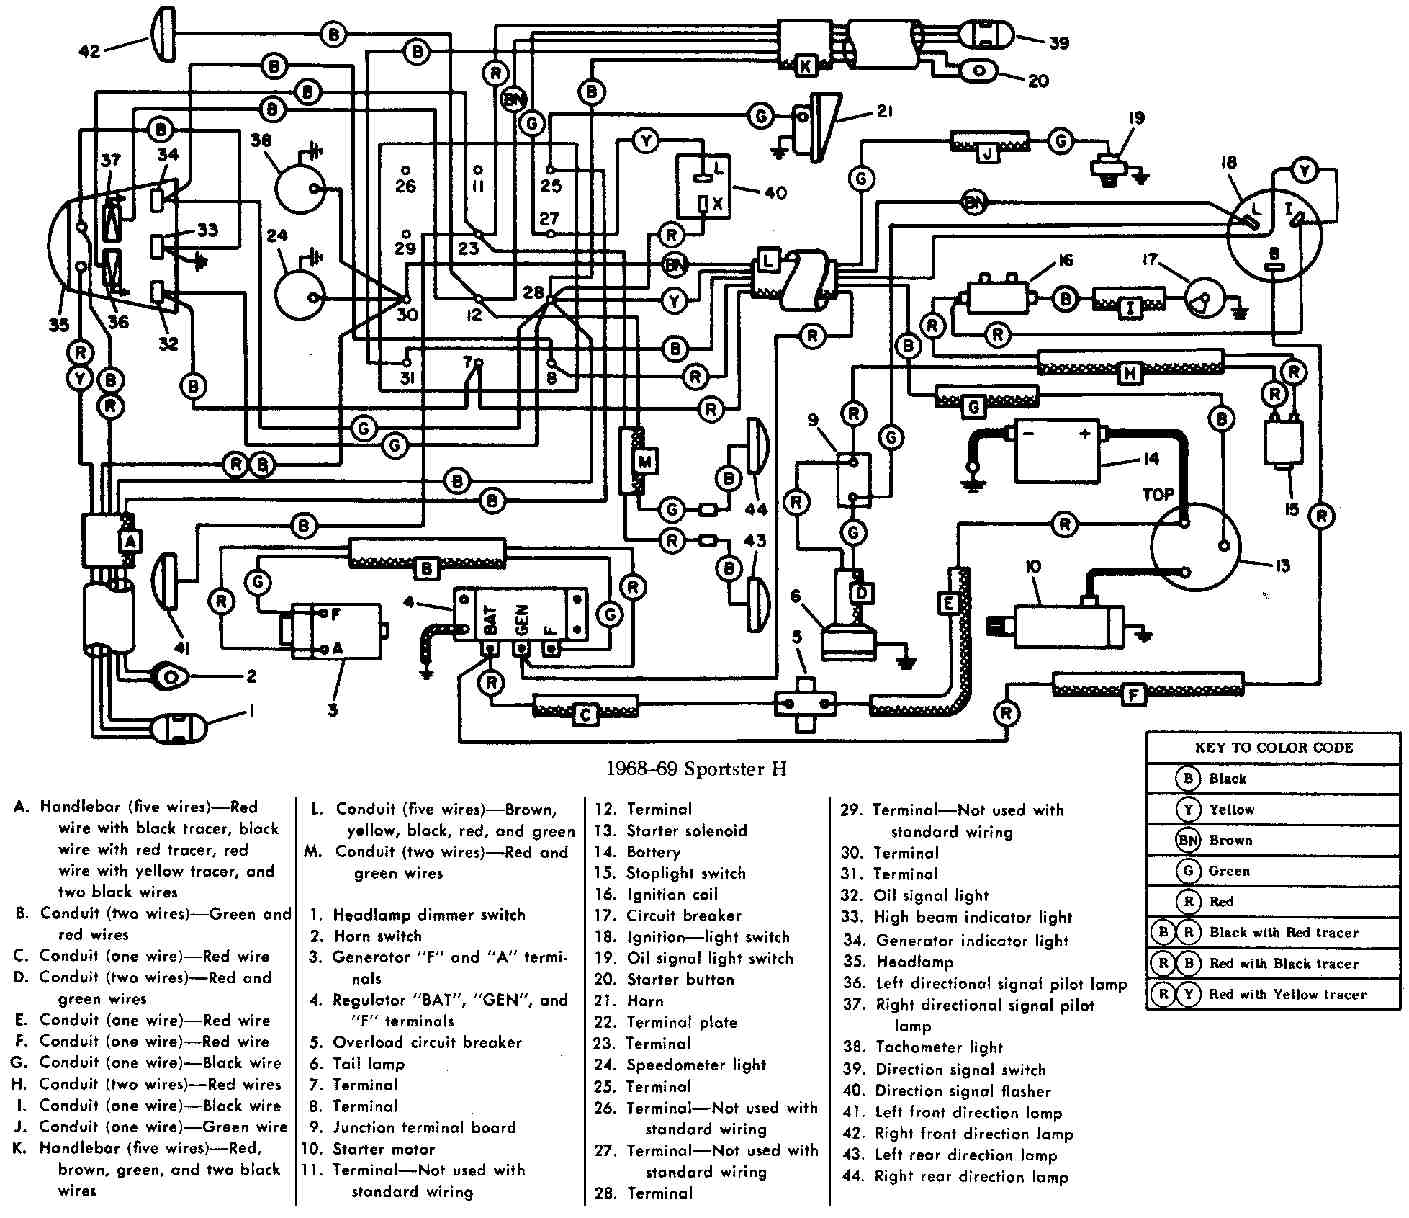 1996 Seadoo Wiring Schematic Simple Guide About Diagram Sea Doo 587 Harley Davidson Sportster 1968 1969 Electrical